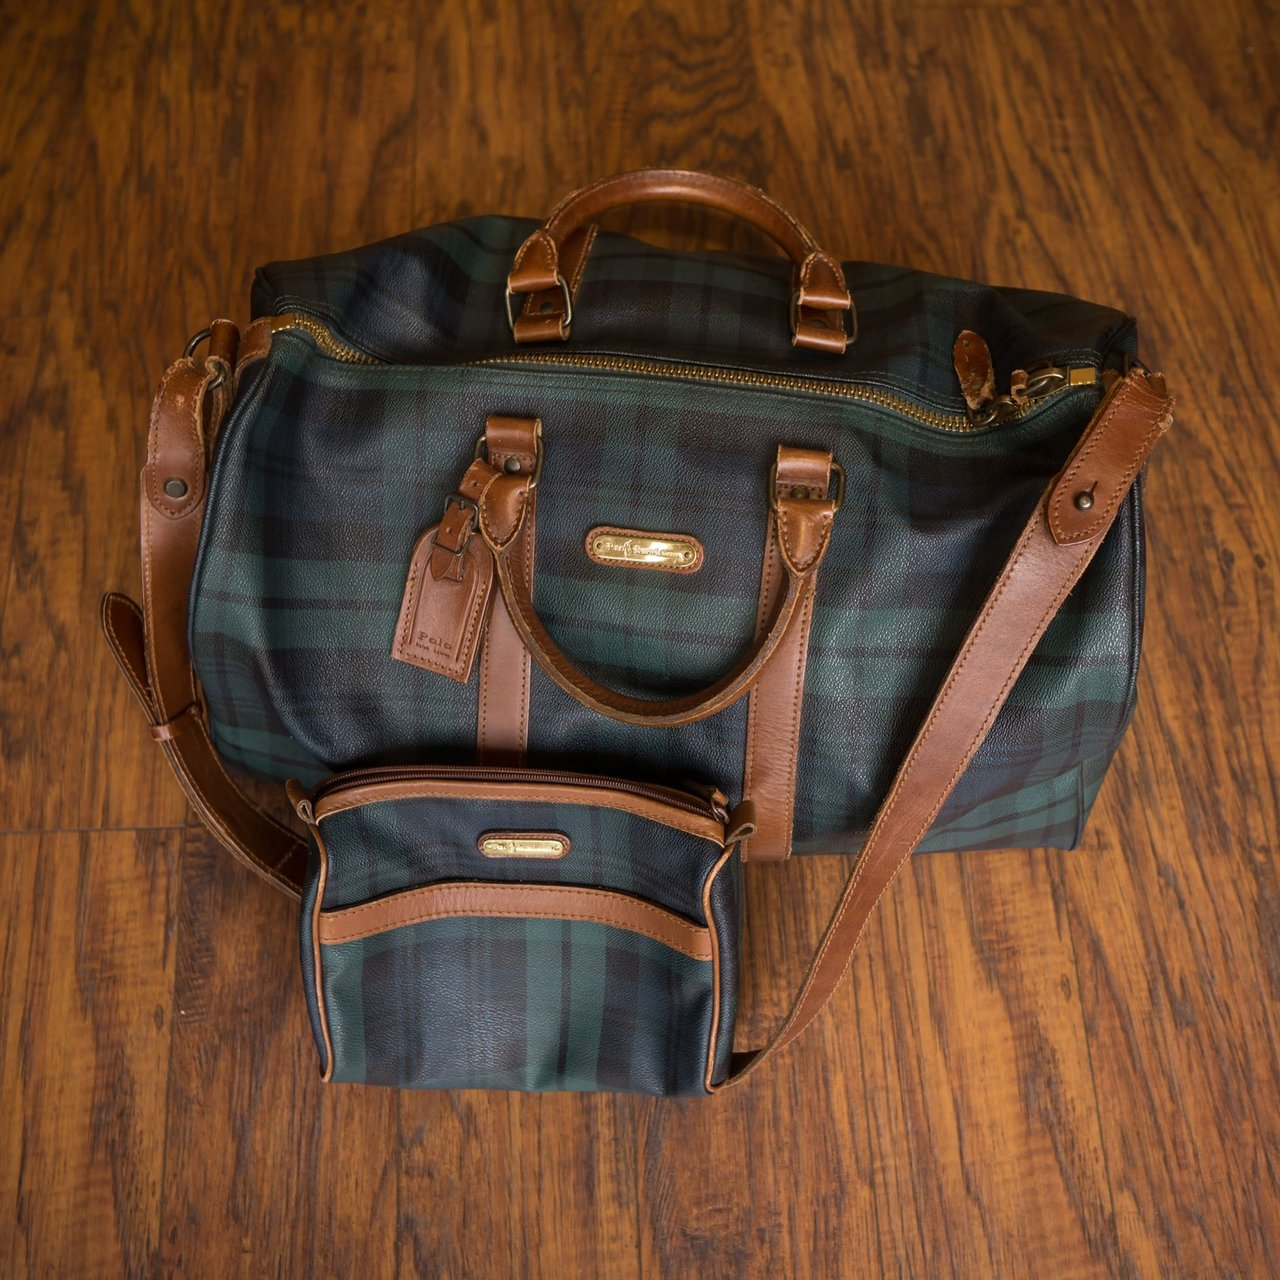 0ce3d18b1f4f Rare Vintage Polo Ralph Lauren Duffel with Matching Toiletry - Depop